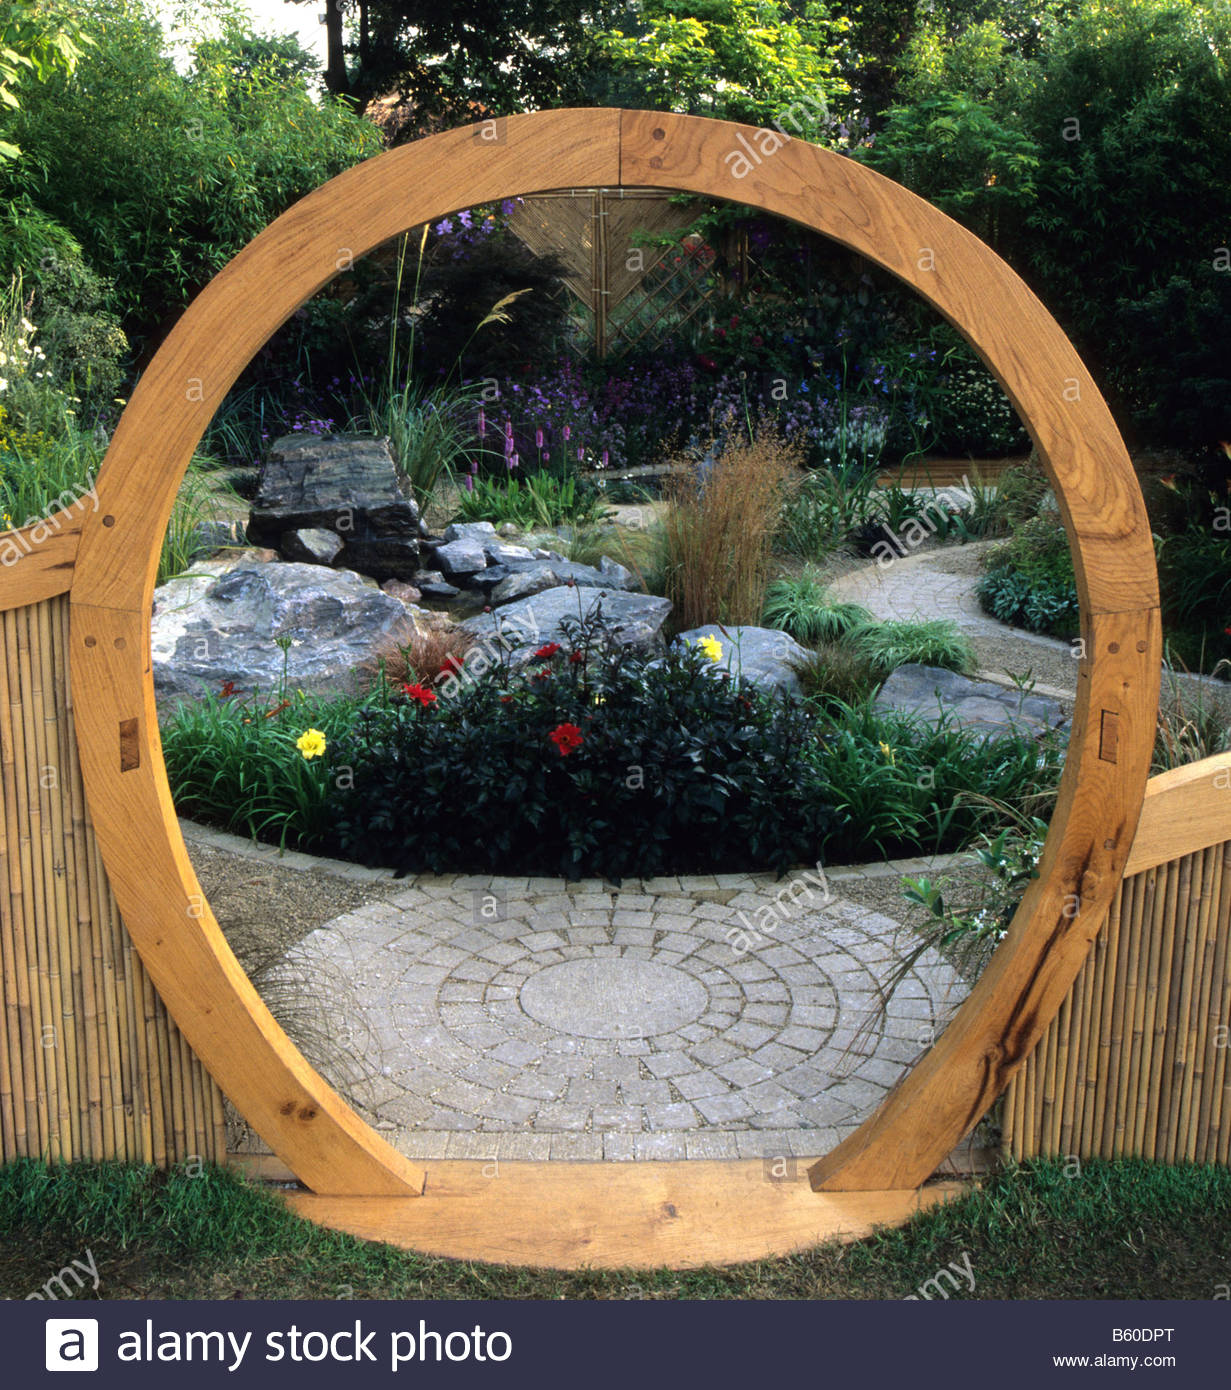 feng shui garden london design pamela woods circular moon. Black Bedroom Furniture Sets. Home Design Ideas